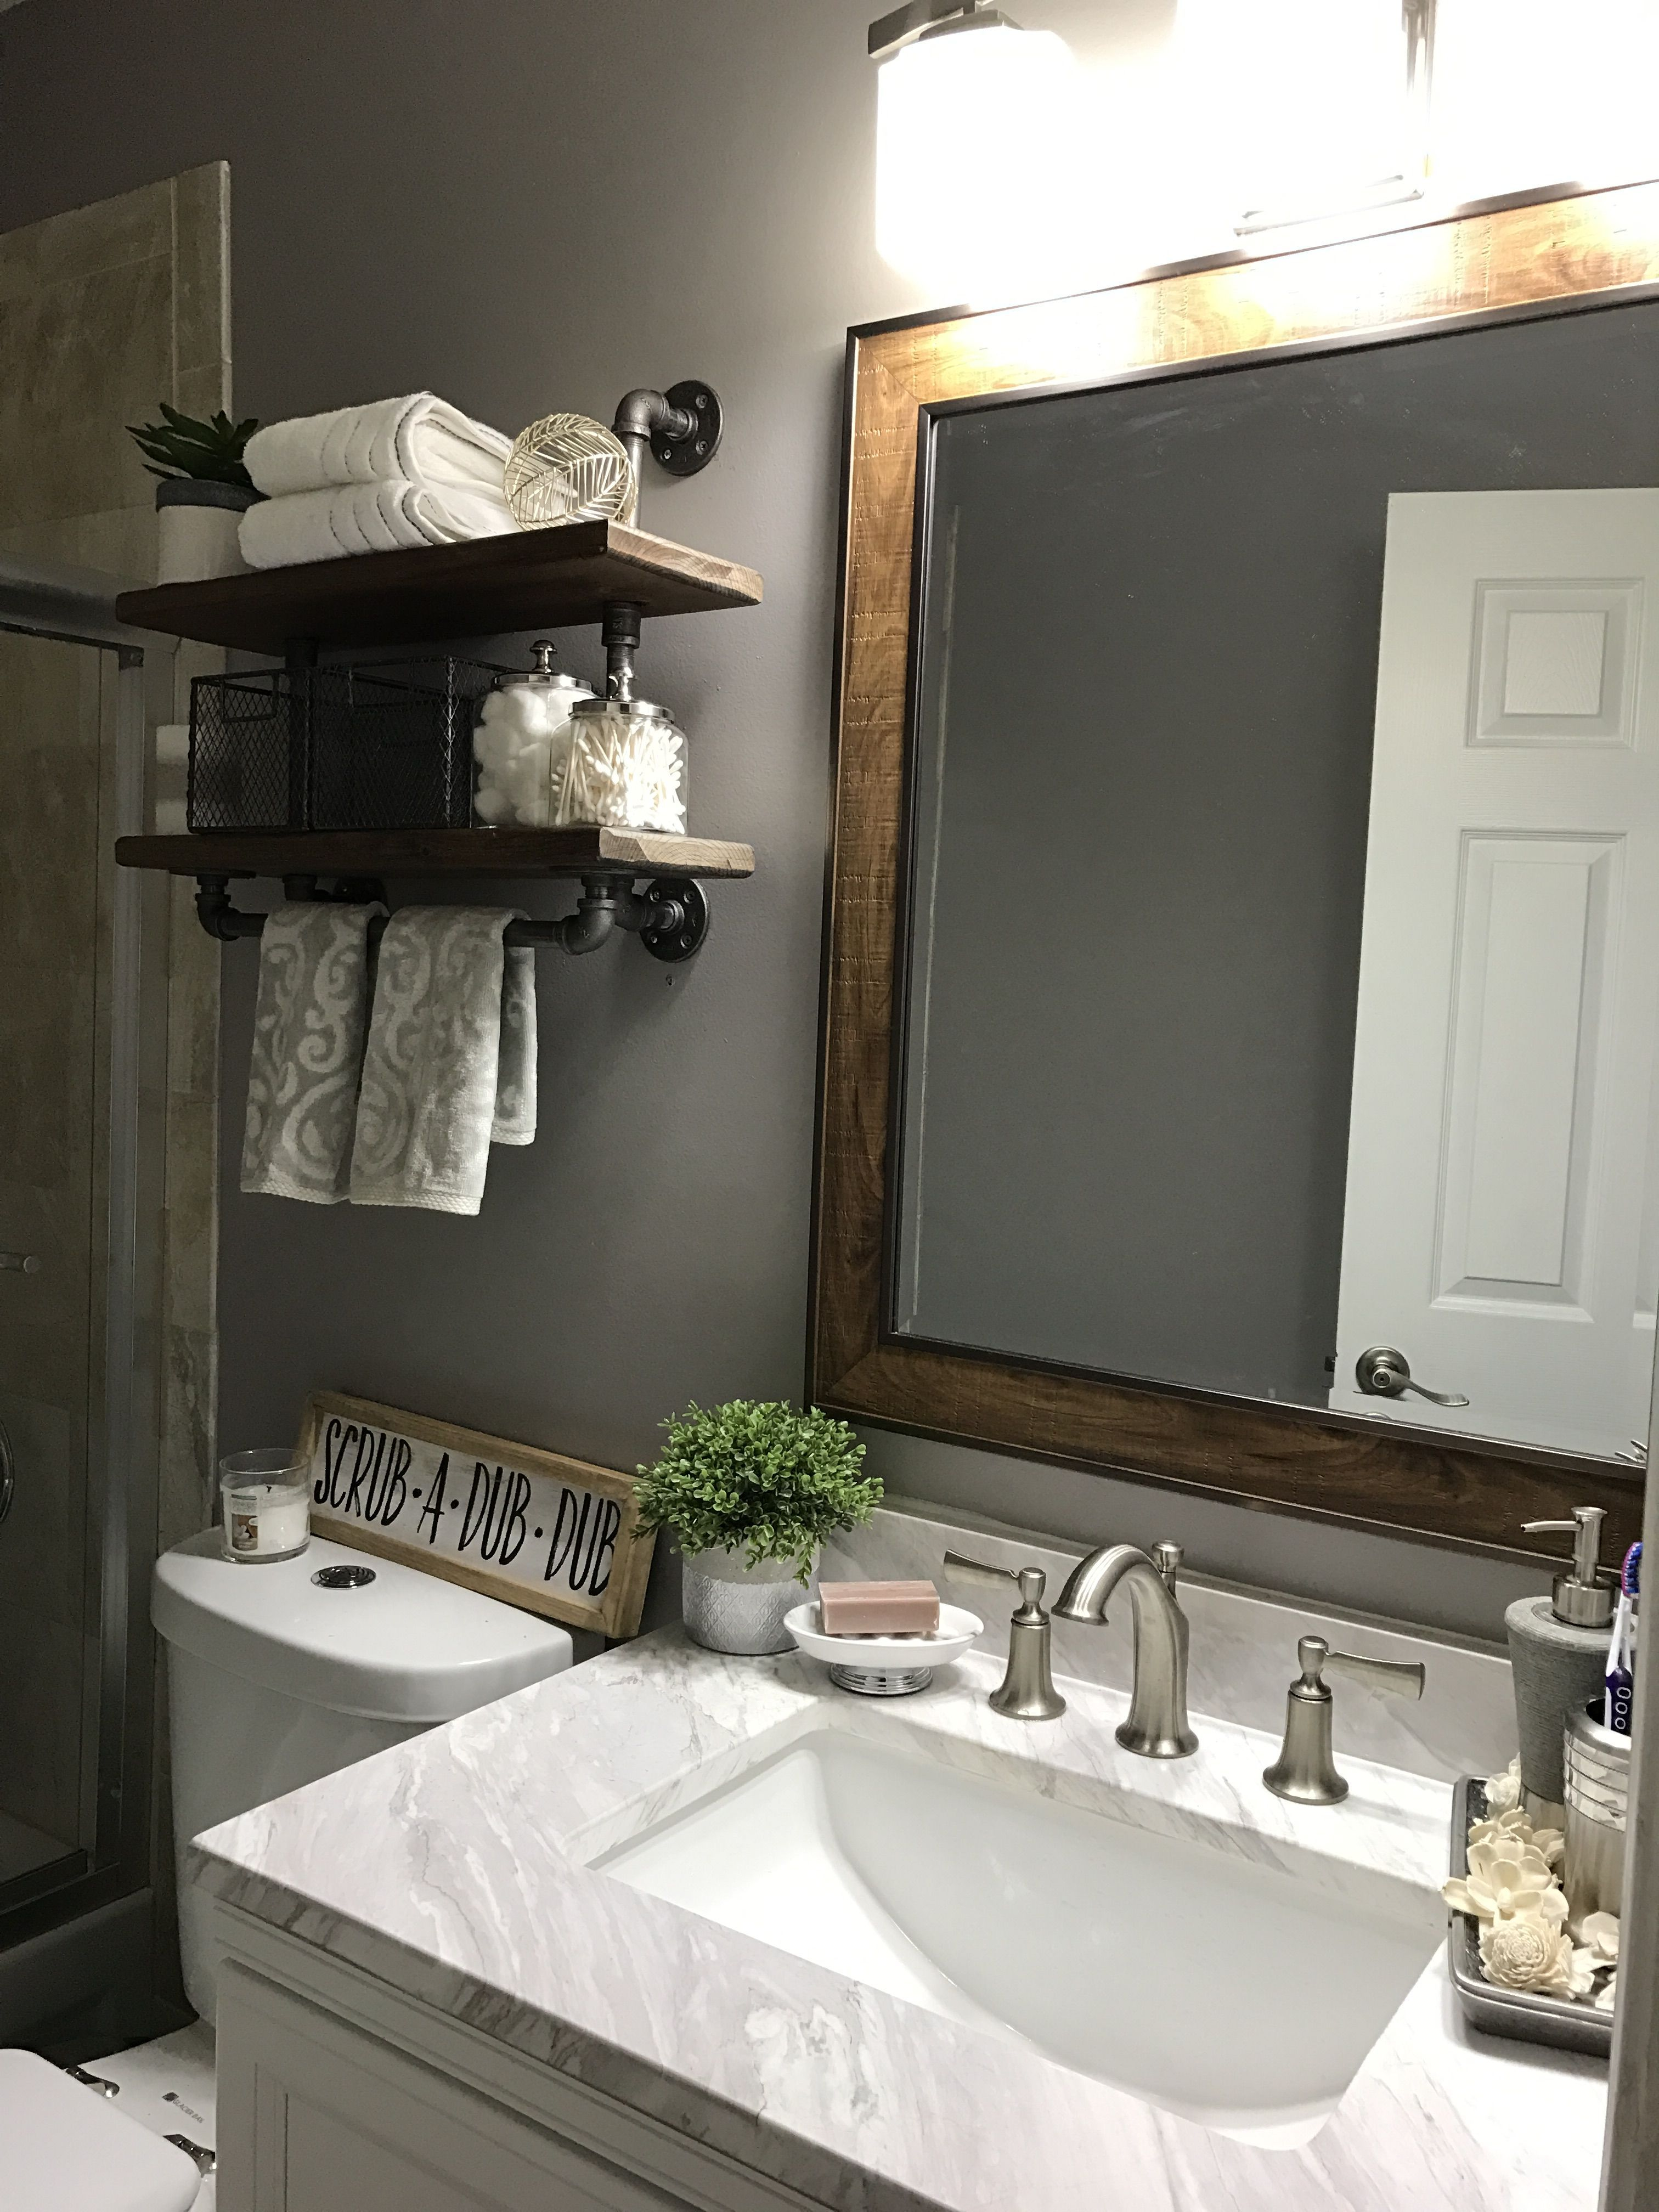 our small bathroom remodel on a budget  zuhause wohnen